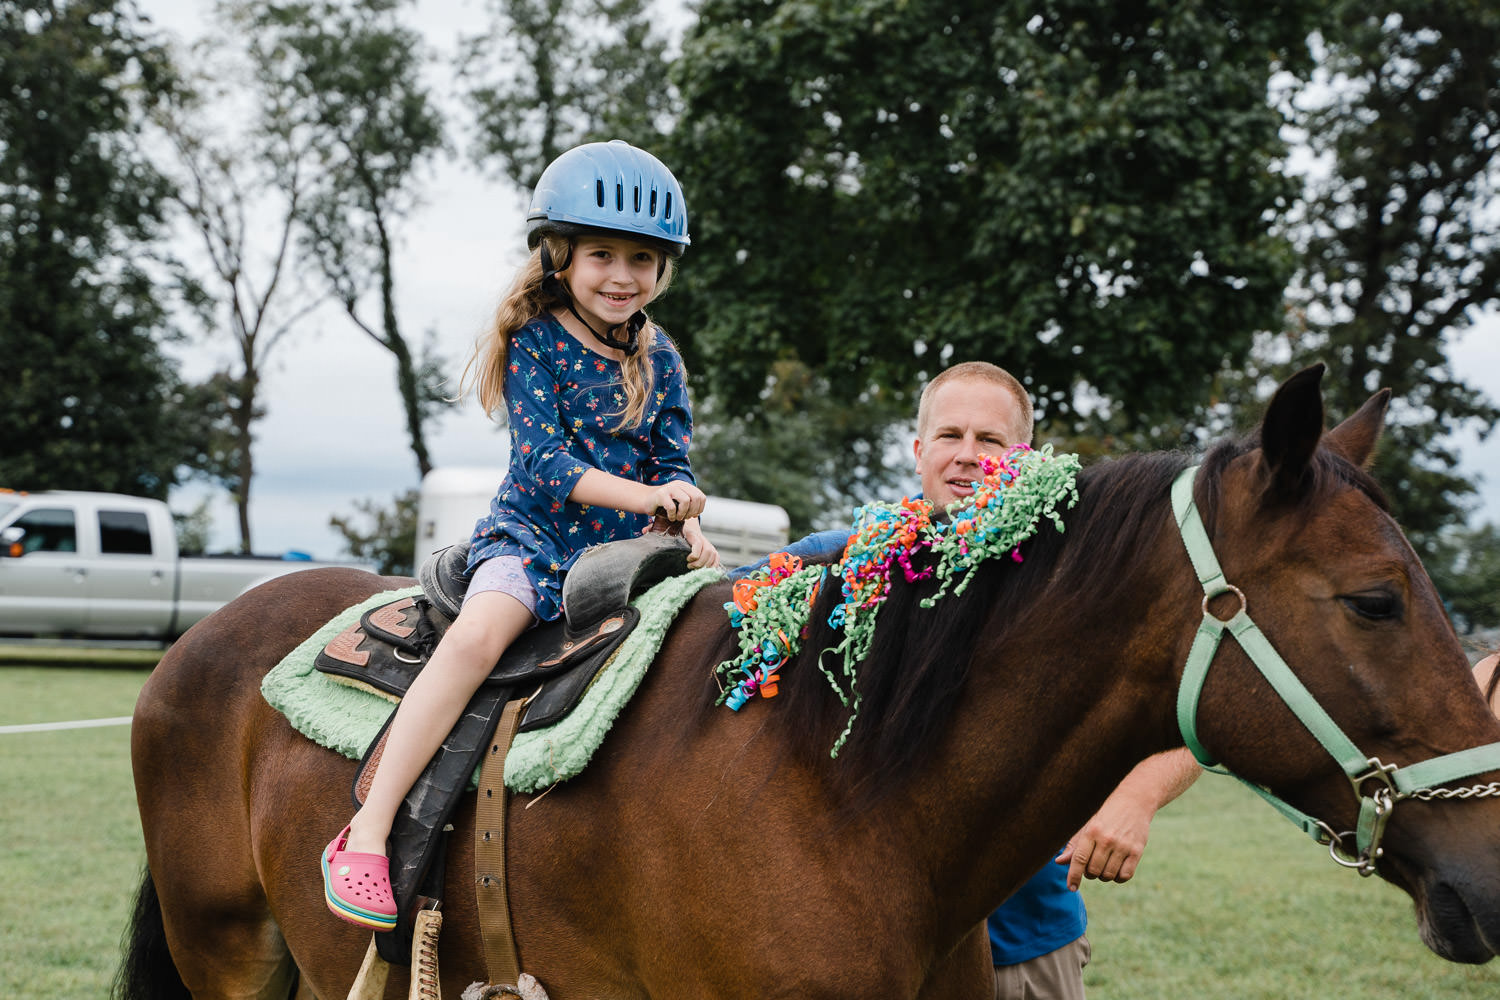 A little girl rides a horse at Sands Point Preserve.